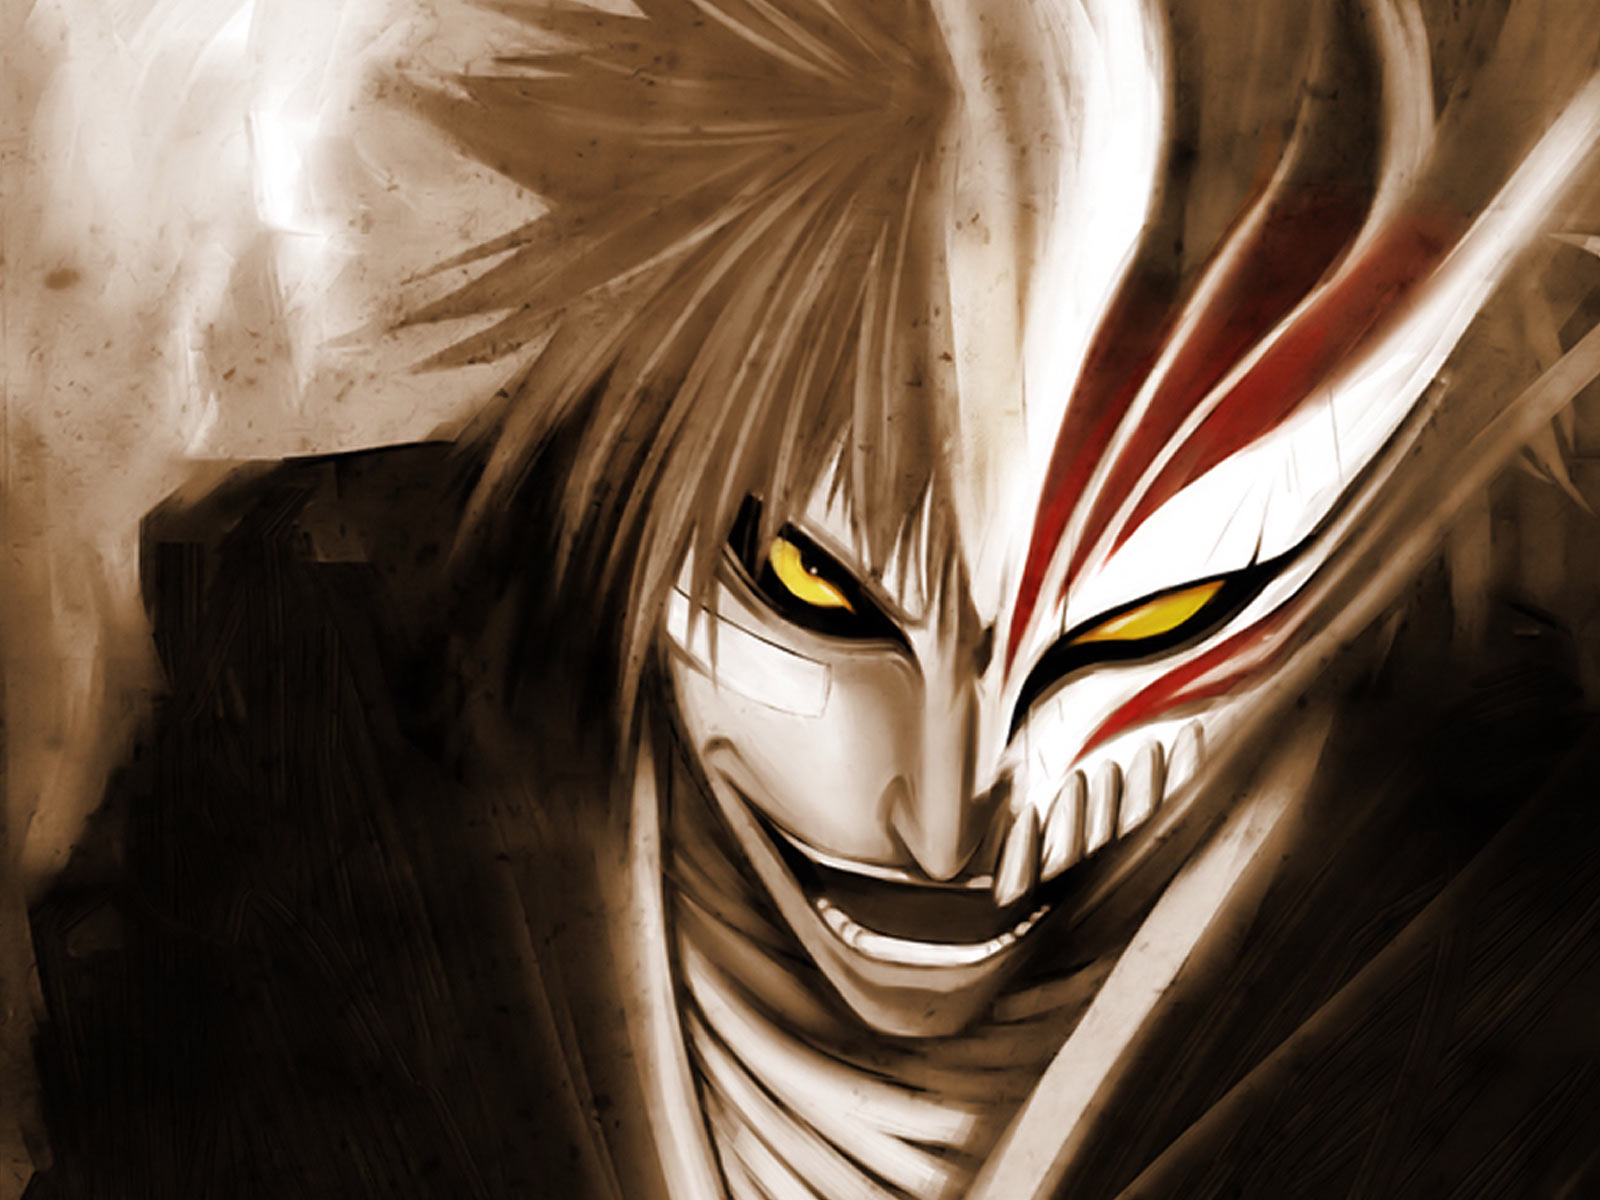 http://2.bp.blogspot.com/-Js8ATQw8cng/TdEKibccjRI/AAAAAAAAAKE/_9MNJjV_sRk/s1600/bankai%20bleach%20hollow%20ichigo%20wallpaper%20background.jpg